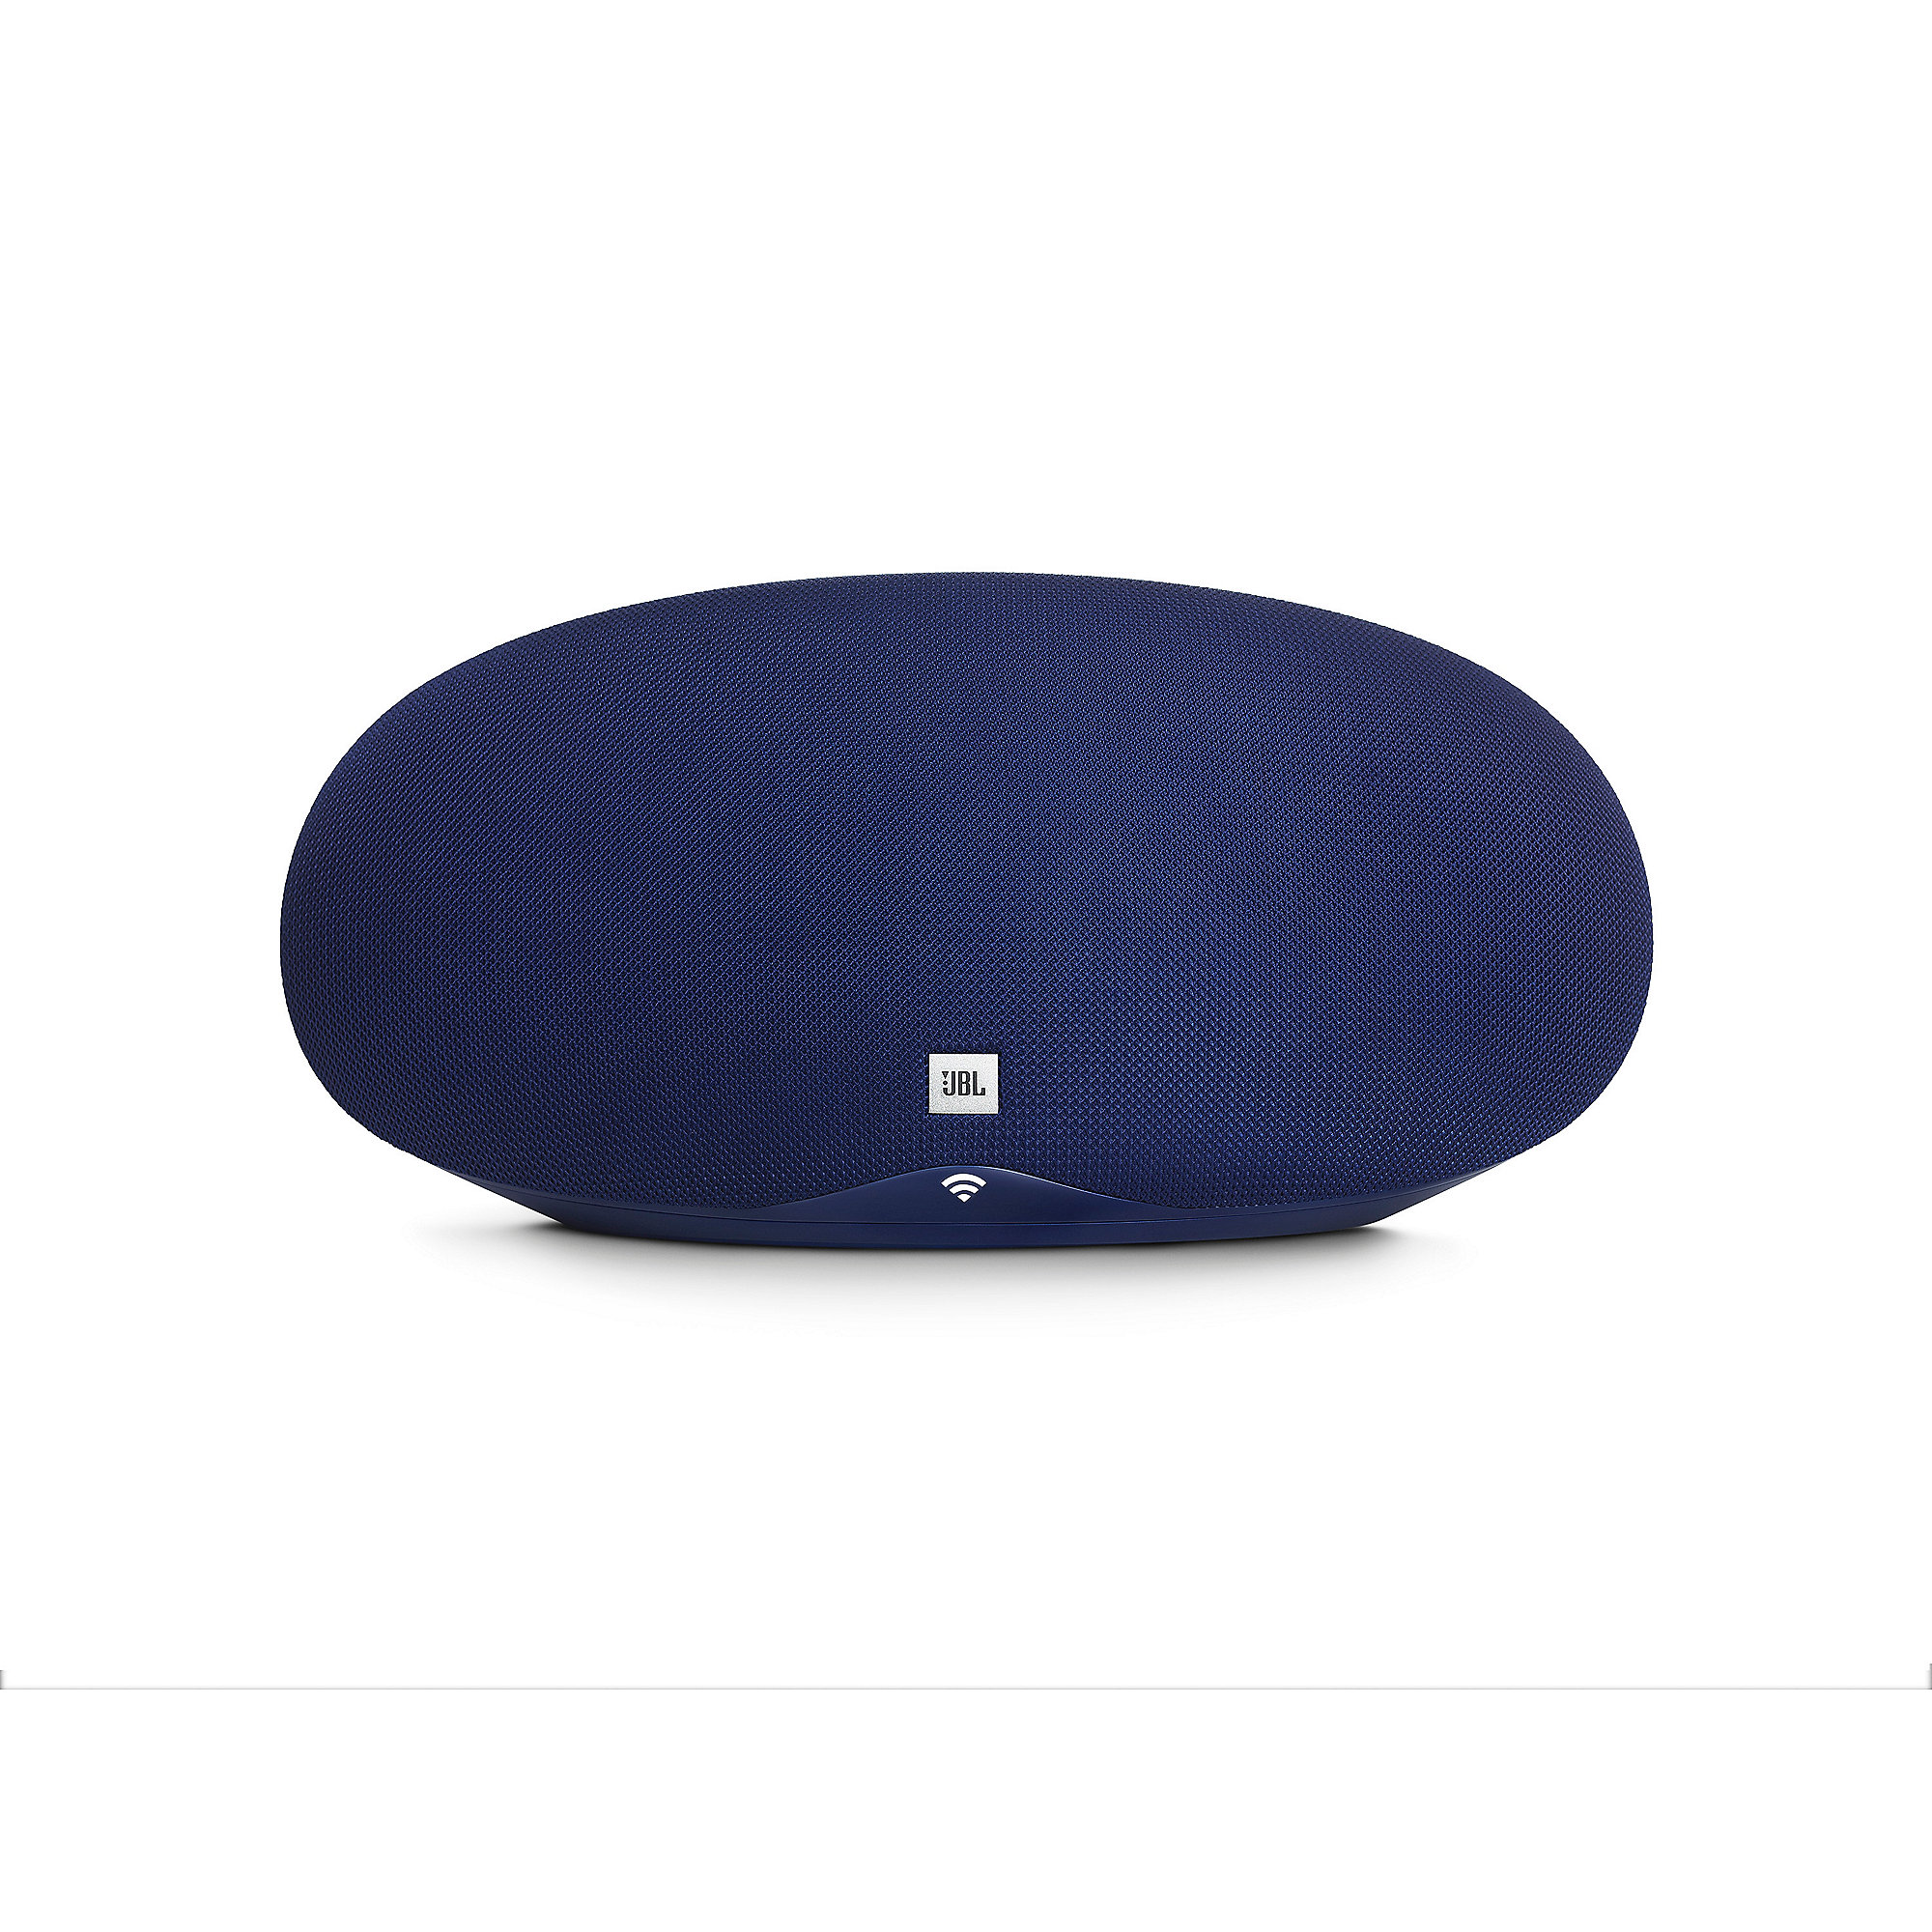 JBL Playlist blau Wireless HD Lautsprecher Multiroom/Bluetooth